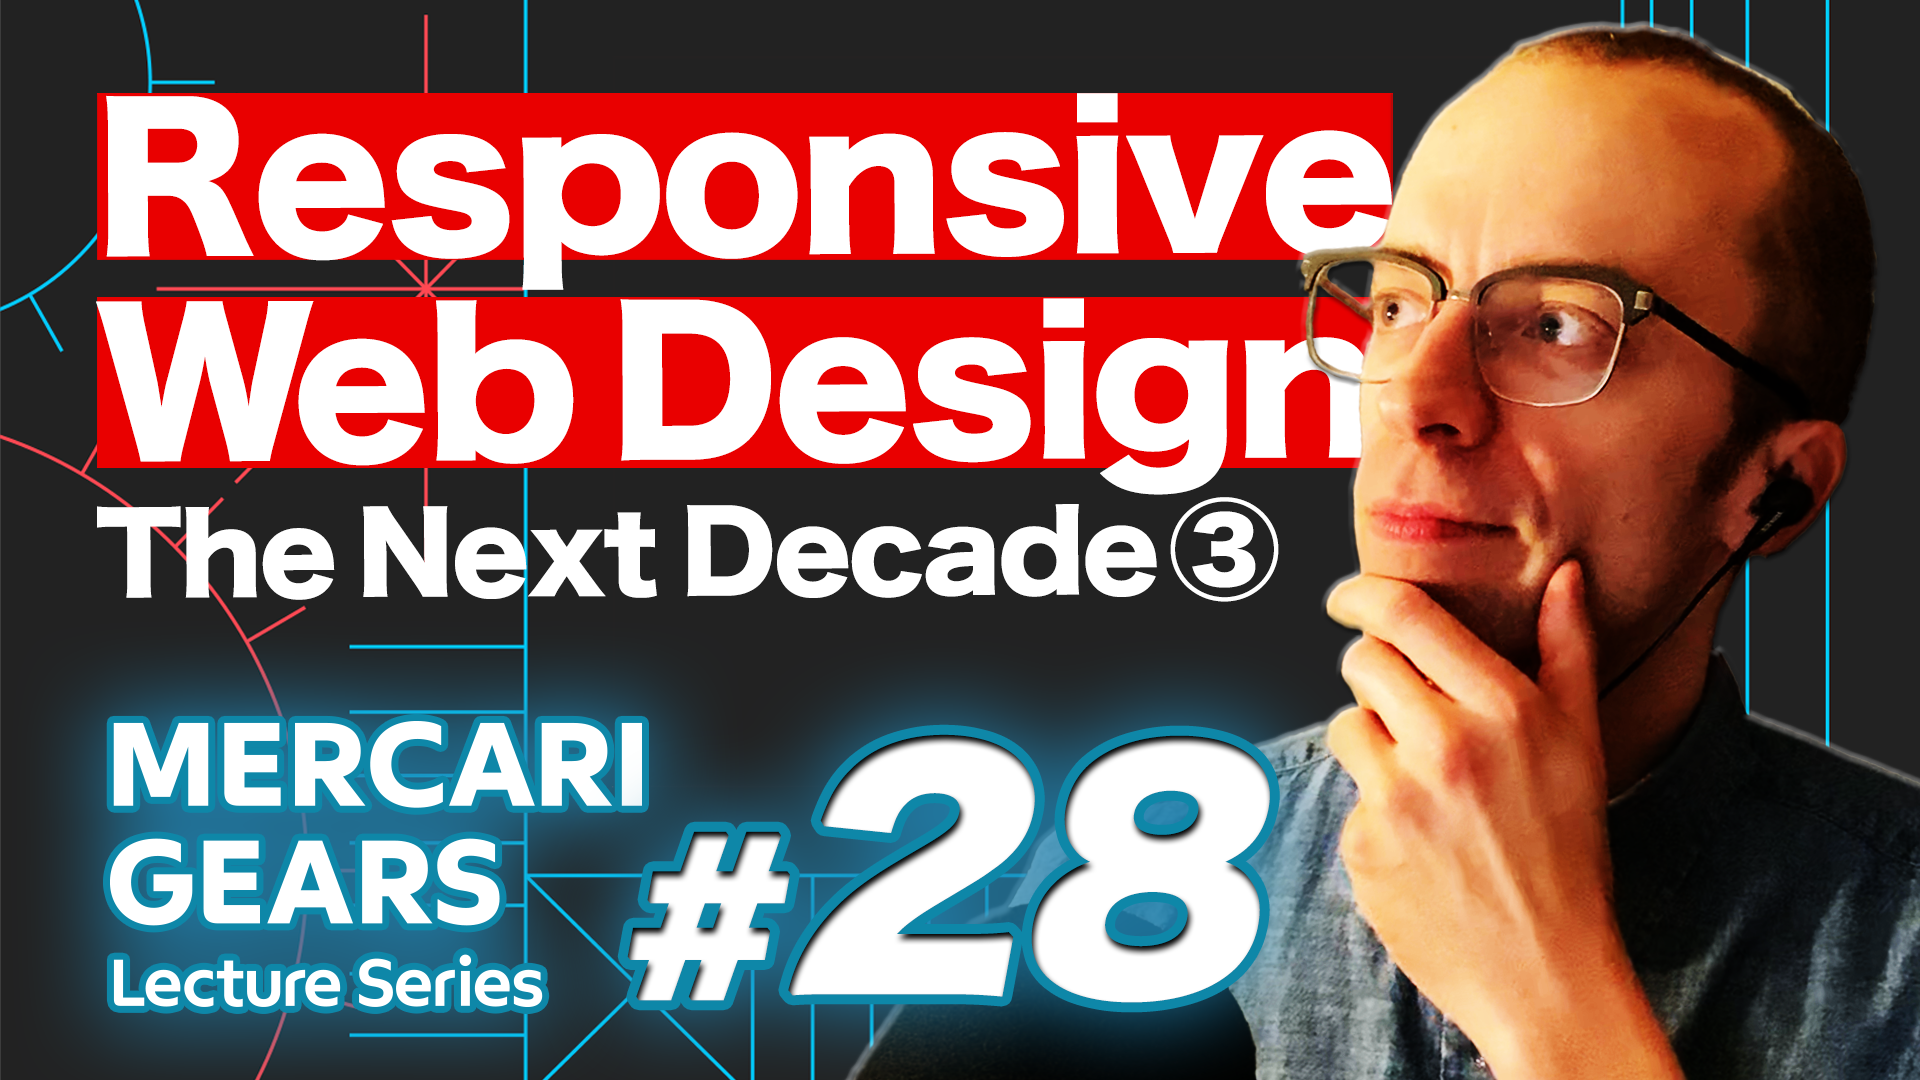 Ethan Marcotteの動画REsponsive Web Design - The Next Decadeのサムネイル